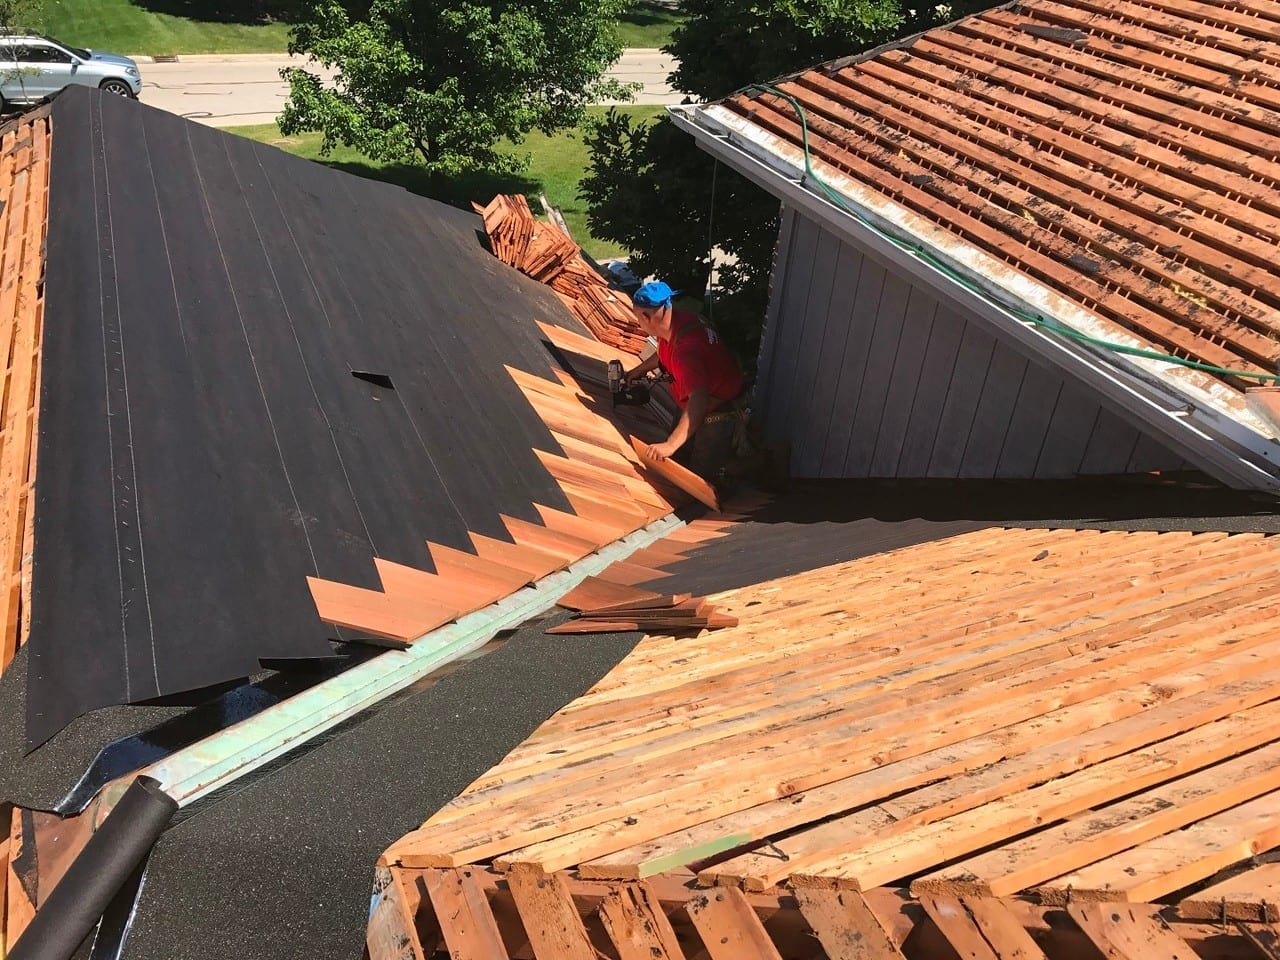 Make sure you choose a high quality contractor like A.B. Edward Enterprises, Inc. for your roofing needs